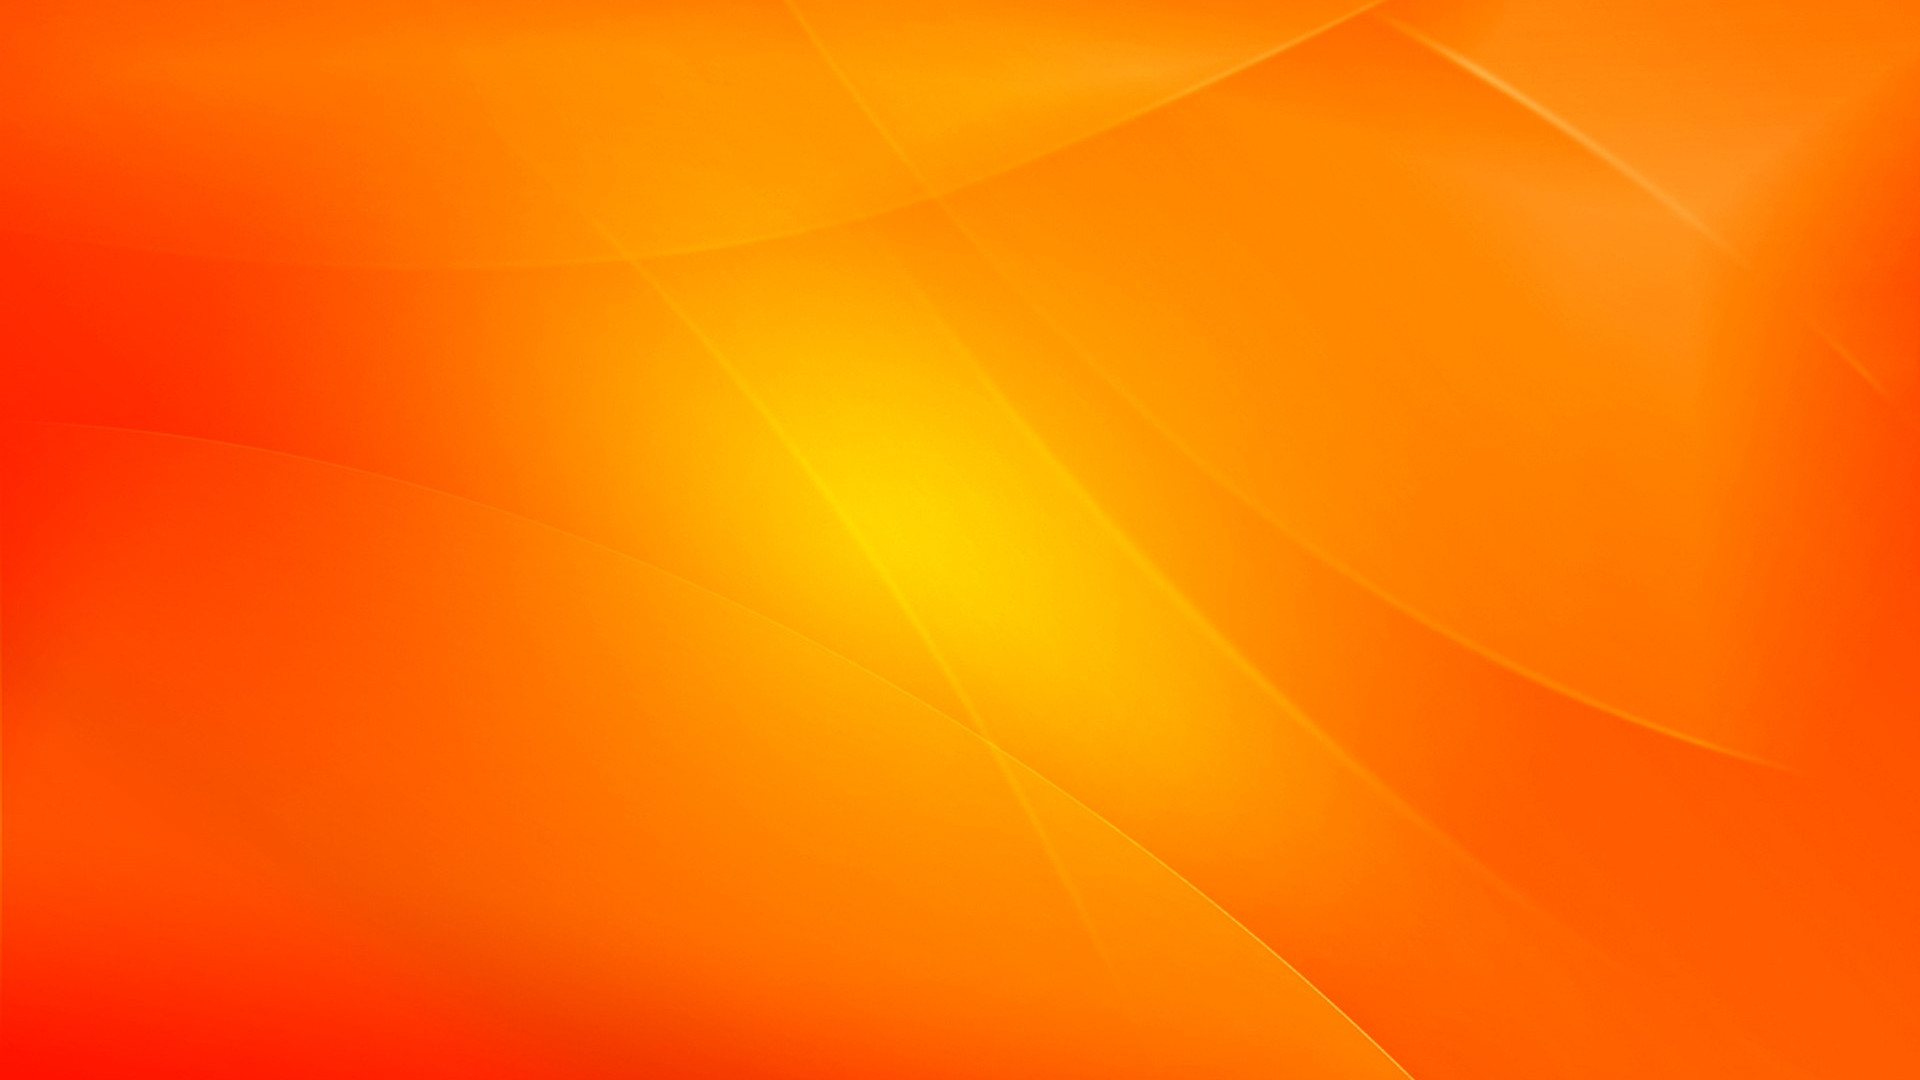 abstract orange wallpapers wallpaperjpg - photo #34